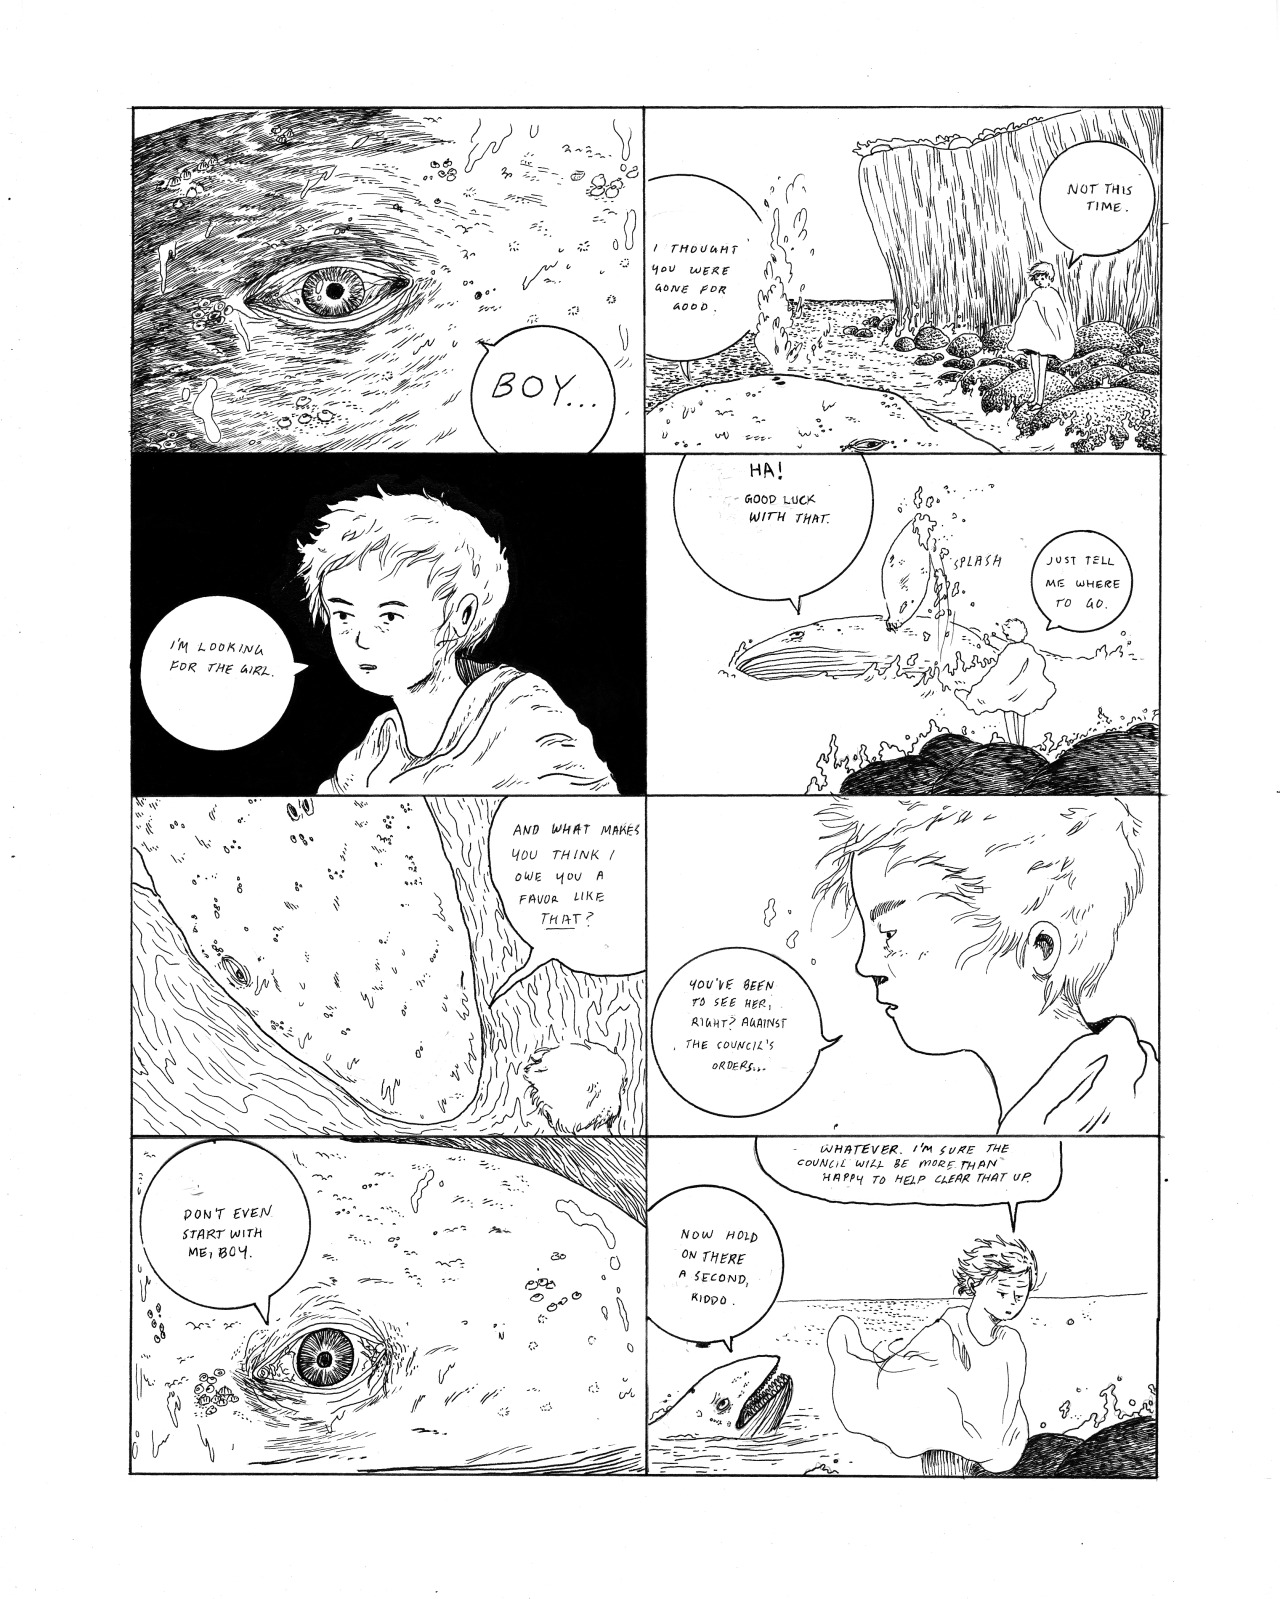 Deluge - Jake Terrell - Page 1